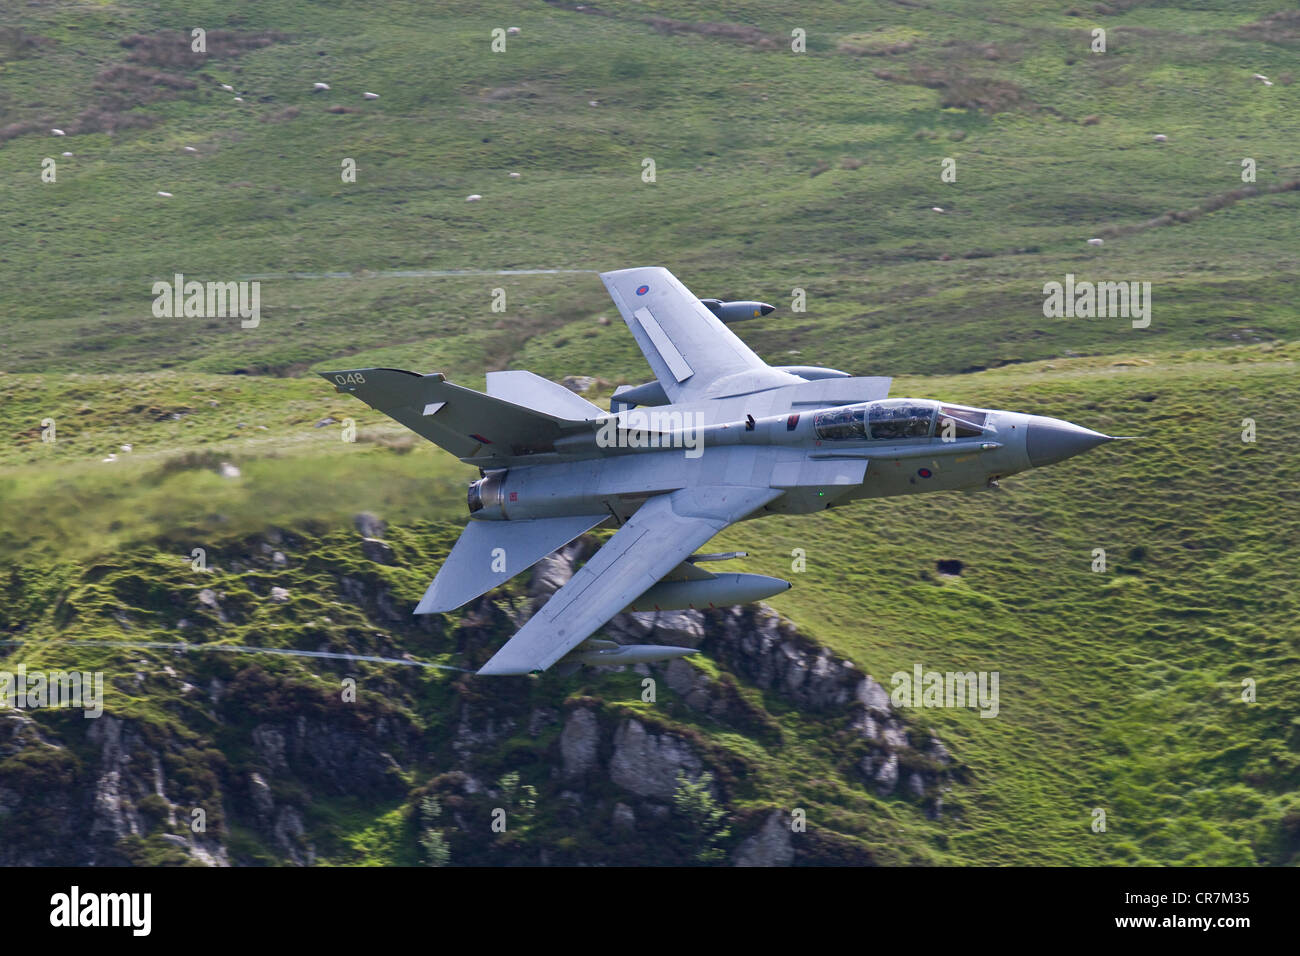 A RAF Tornado flying through the Mach Loop in Wales. Taken from Cad West. Stock Photo